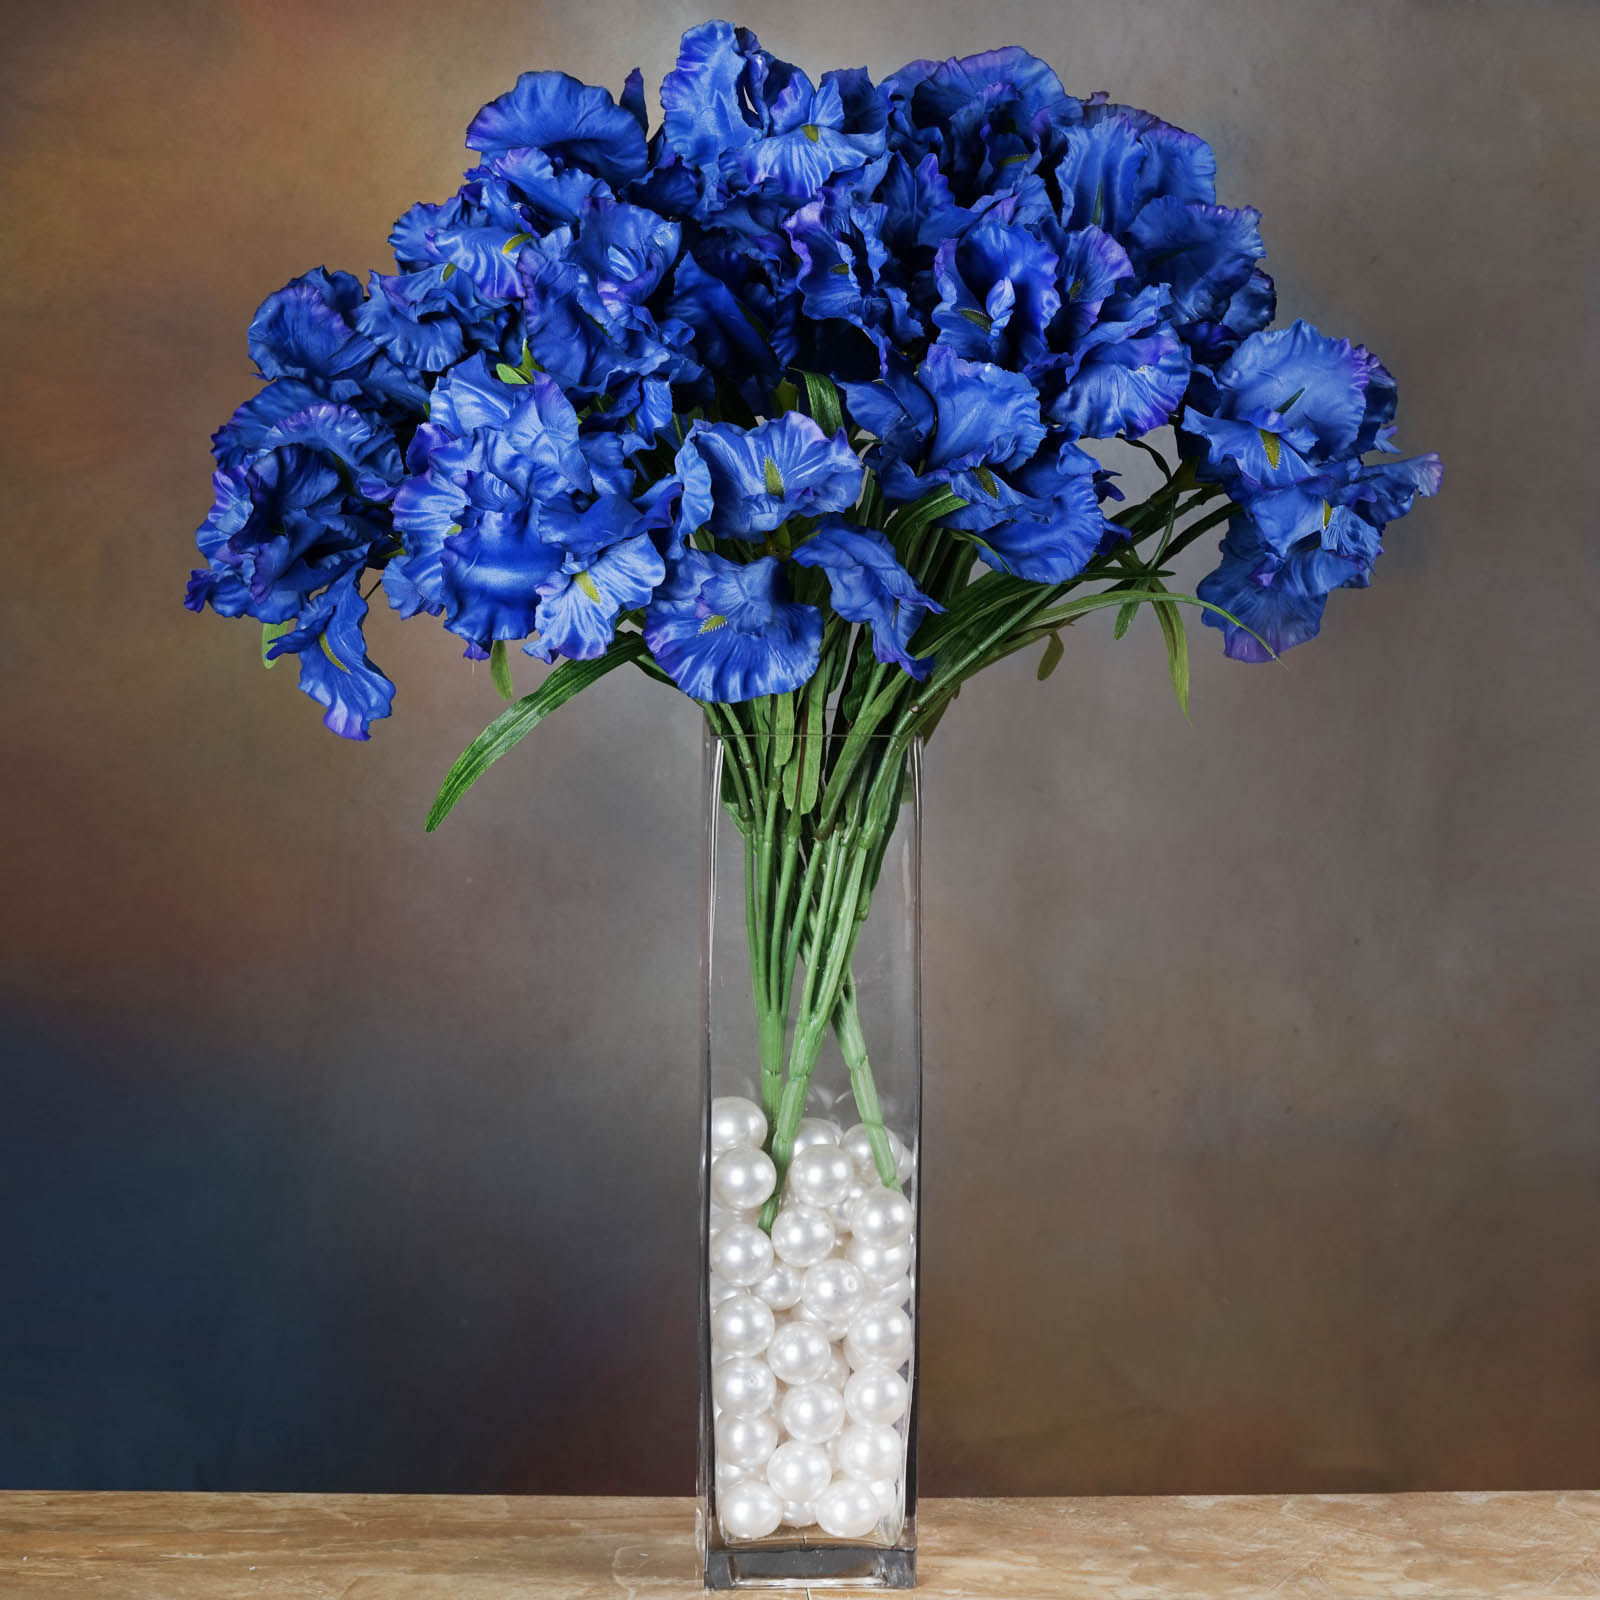 36 large 7 wide silk iris flowers 4 bushes for wedding bouquets 36 large 7 034 wide silk iris flowers izmirmasajfo